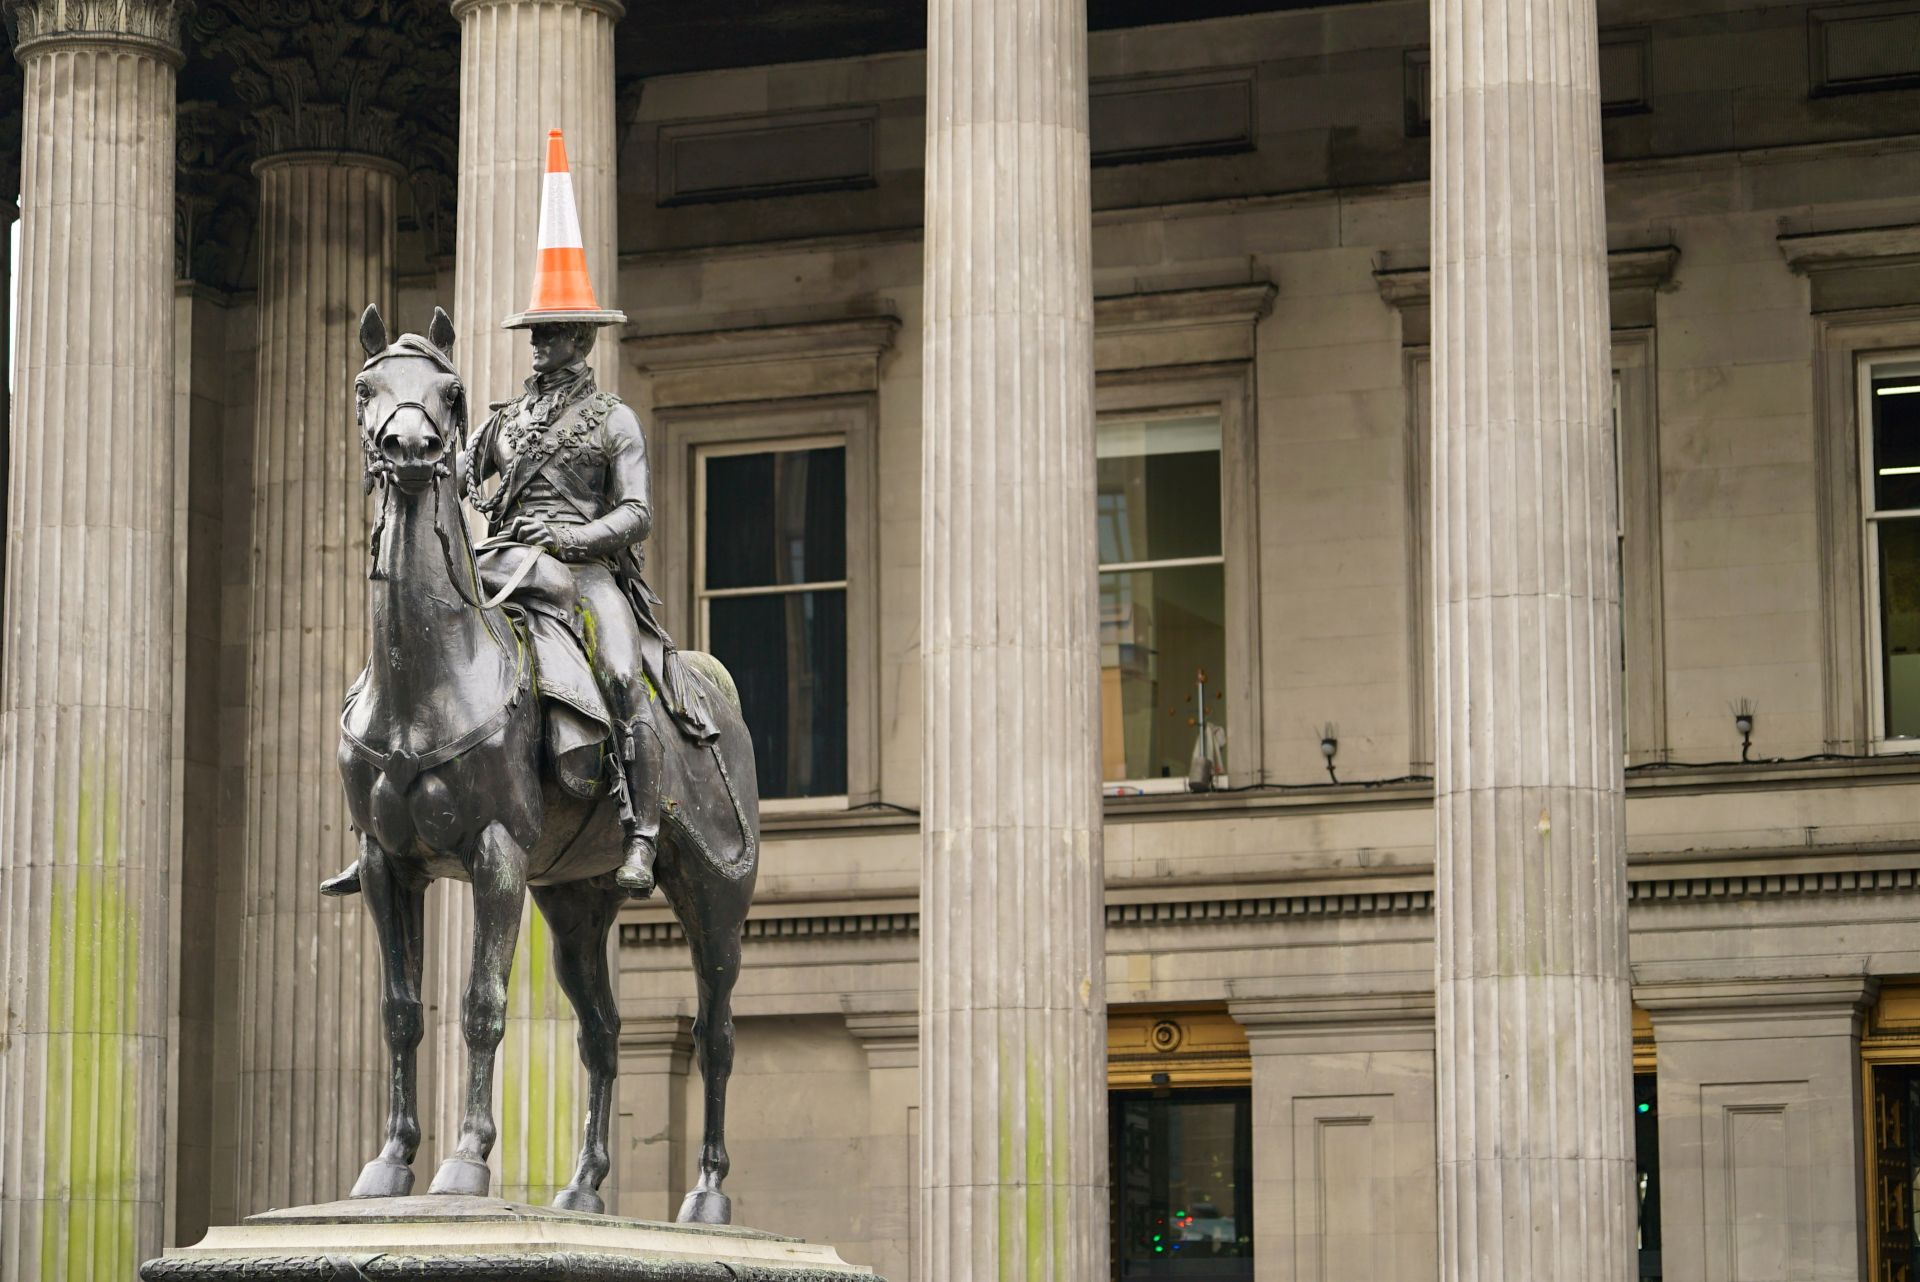 Glasgow food and drink Tours: Statue in Glasgow